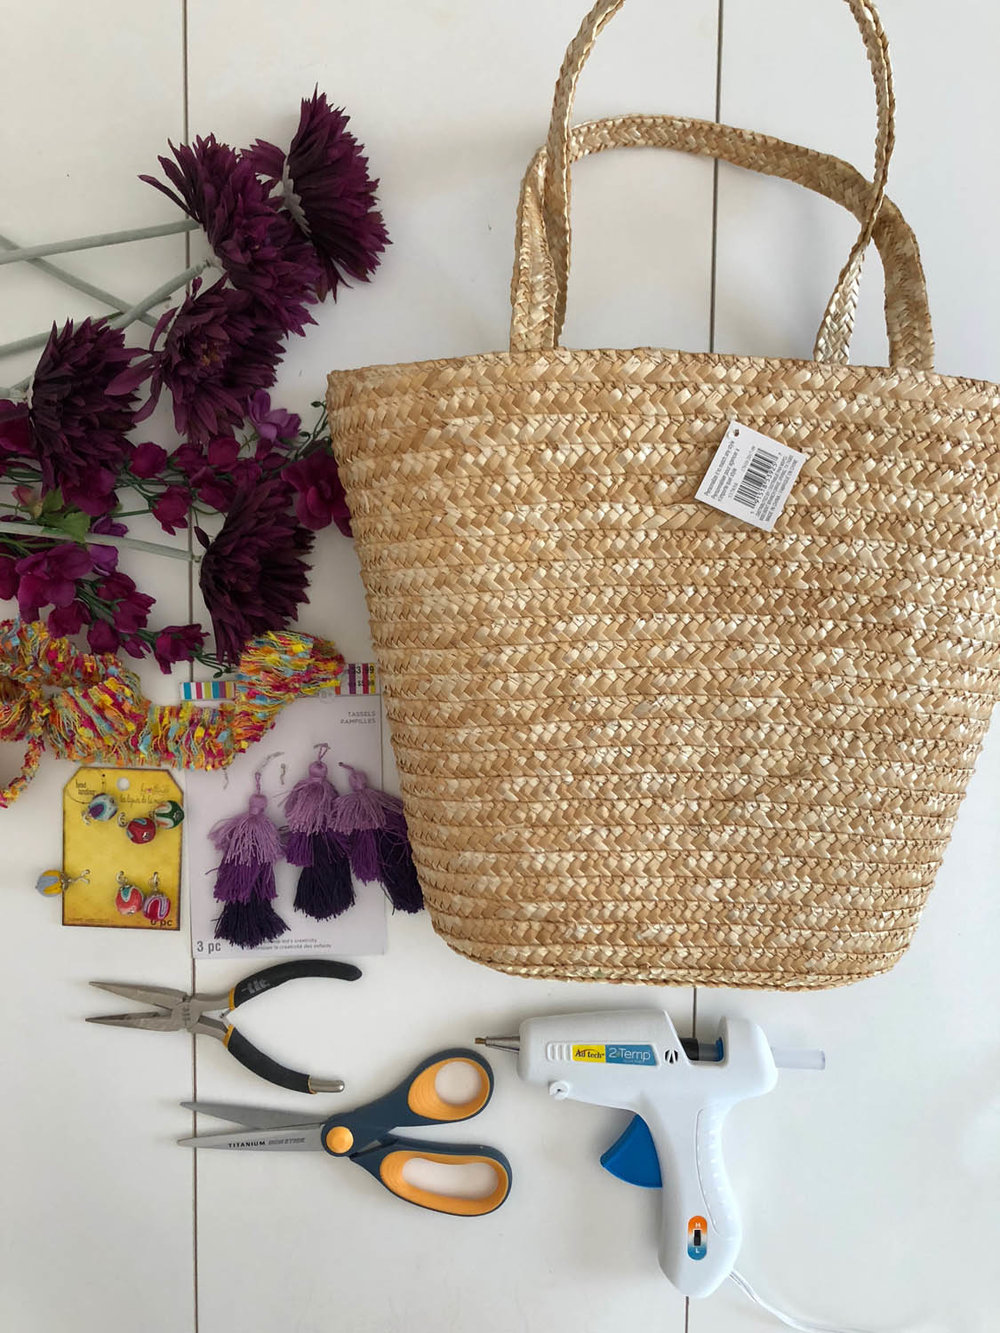 supplies to make an embellished straw tote